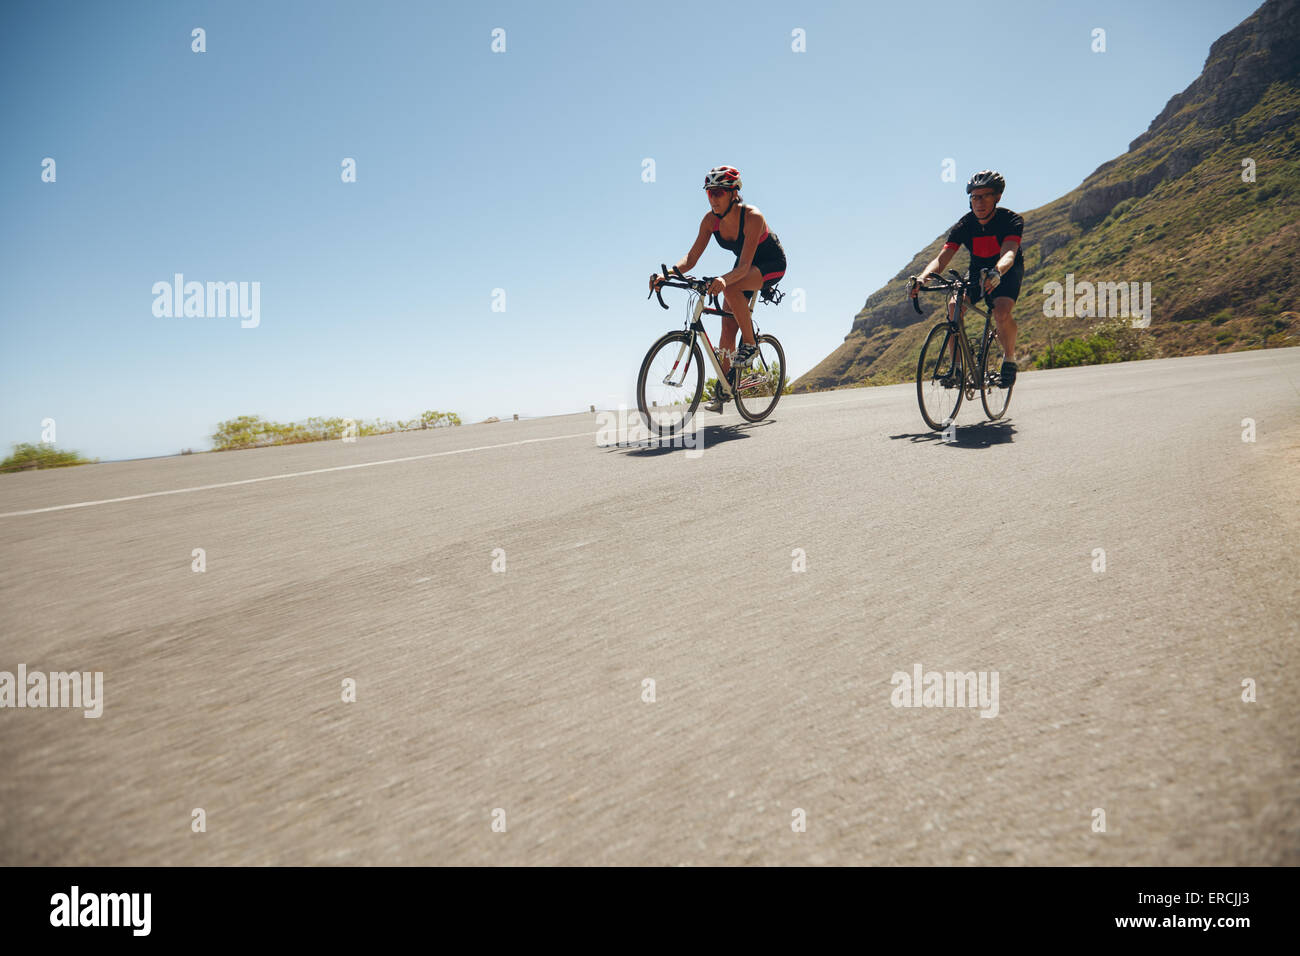 Athletes competing in the cycling leg of triathlon. Triathletes cycling on open country roads. Cyclist riding downhill. - Stock Image